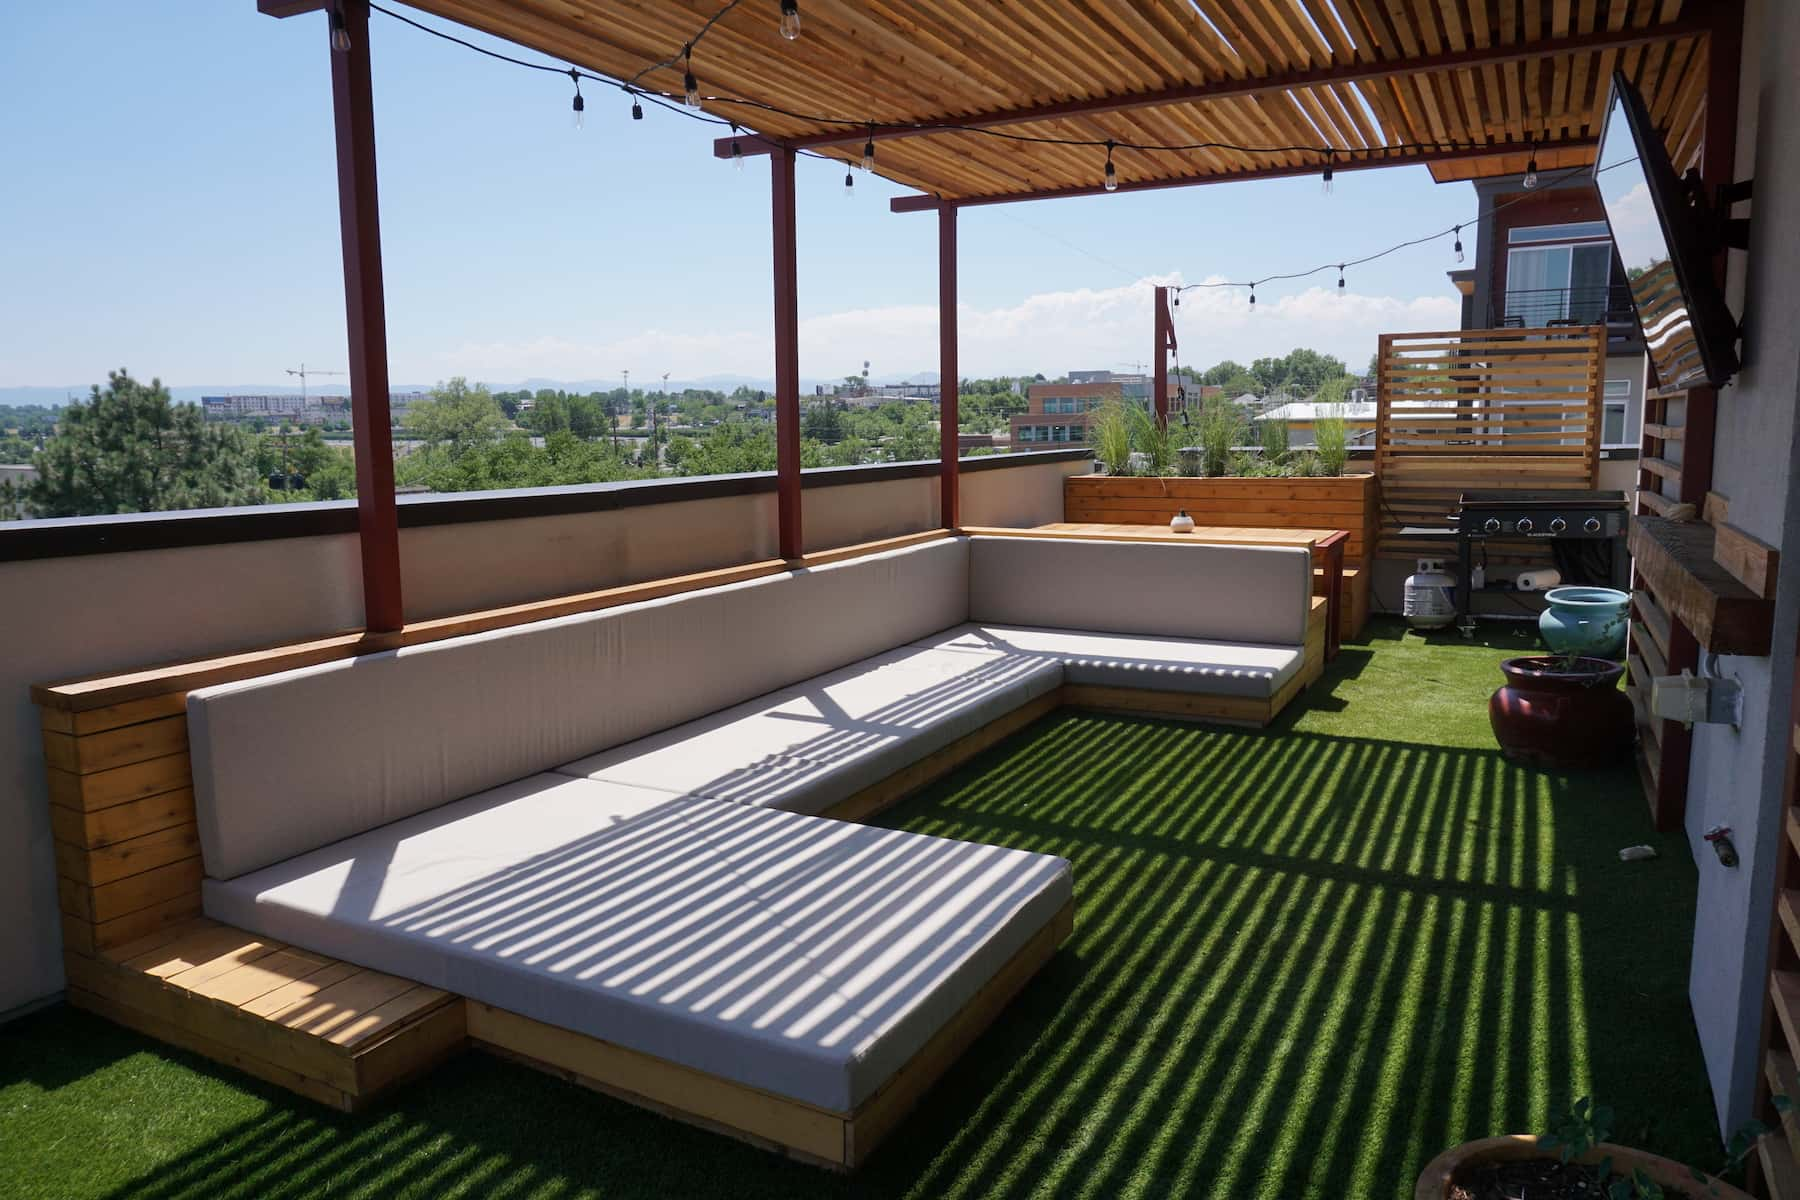 Pergola Daybed Planters Hot Tub Outdoor Dining TV Turf Mile High Stadium Denver CO